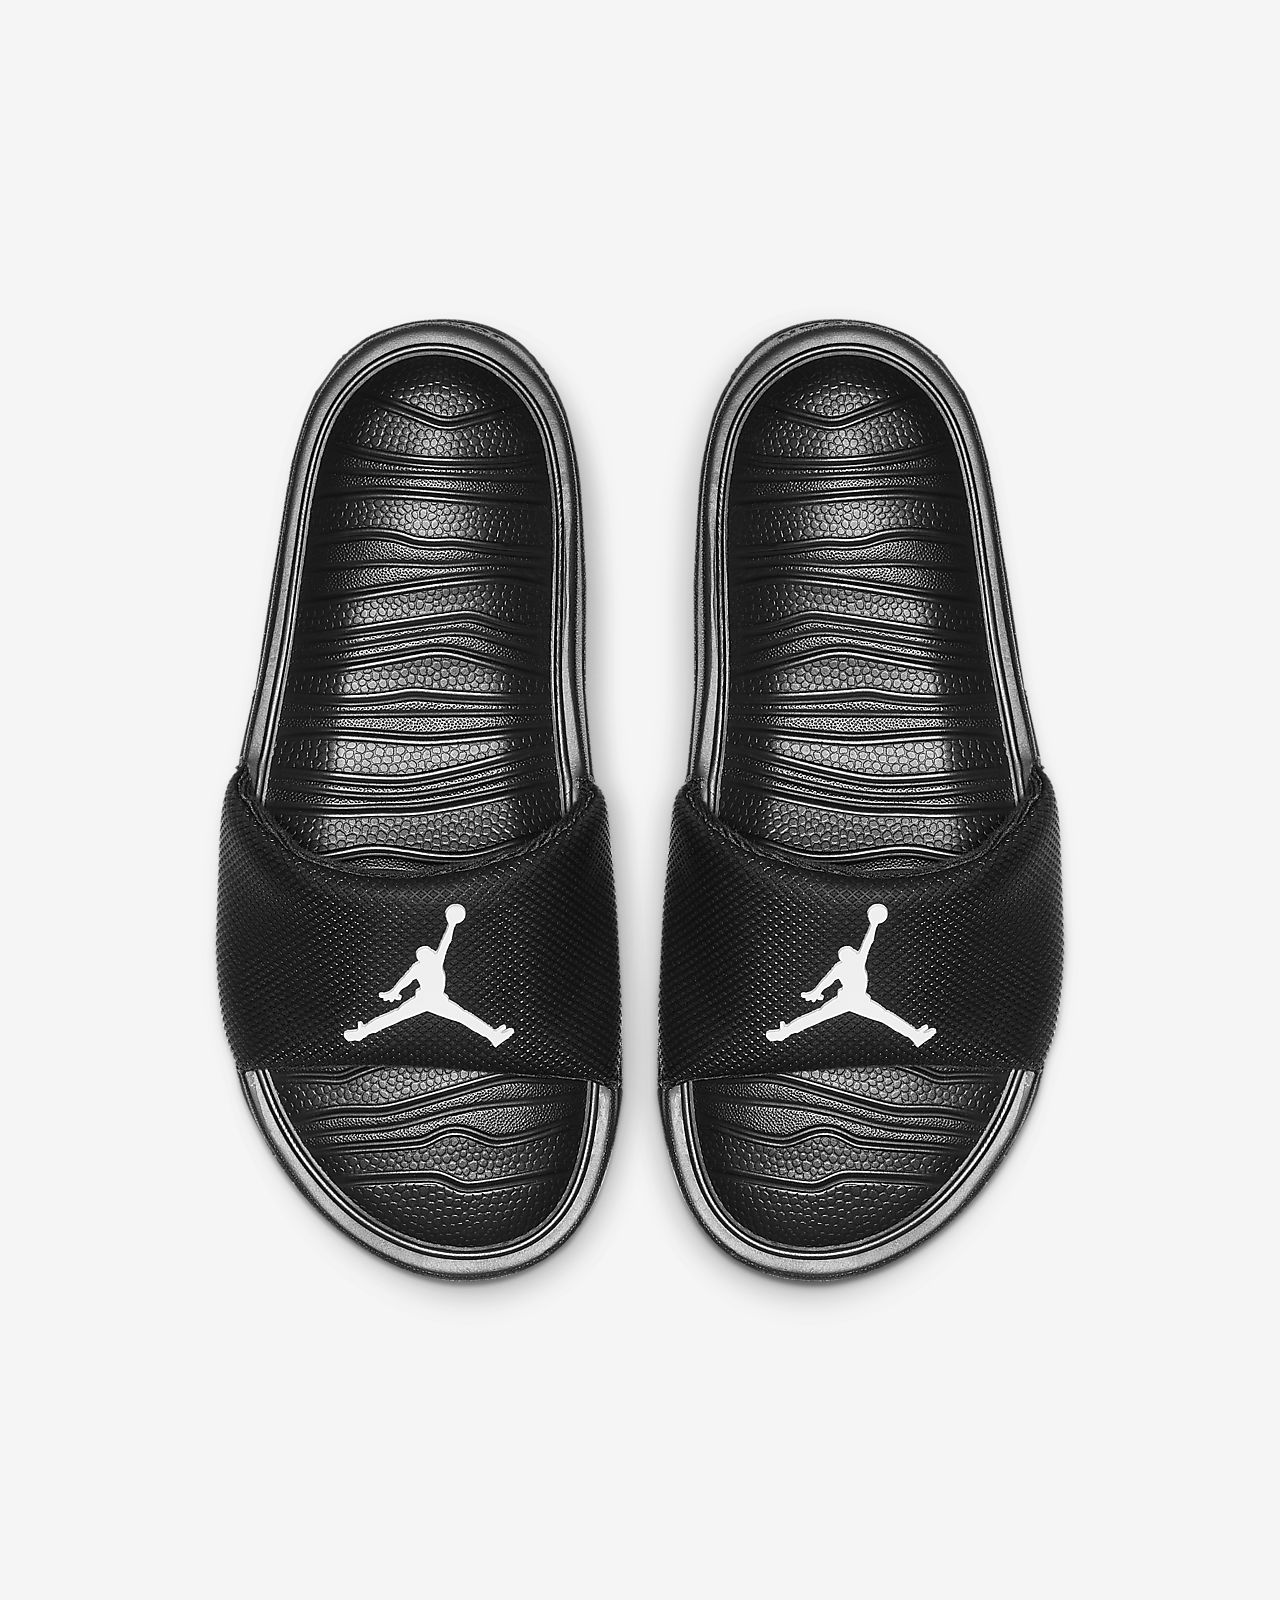 Slider Jordan Break - Ragazzi